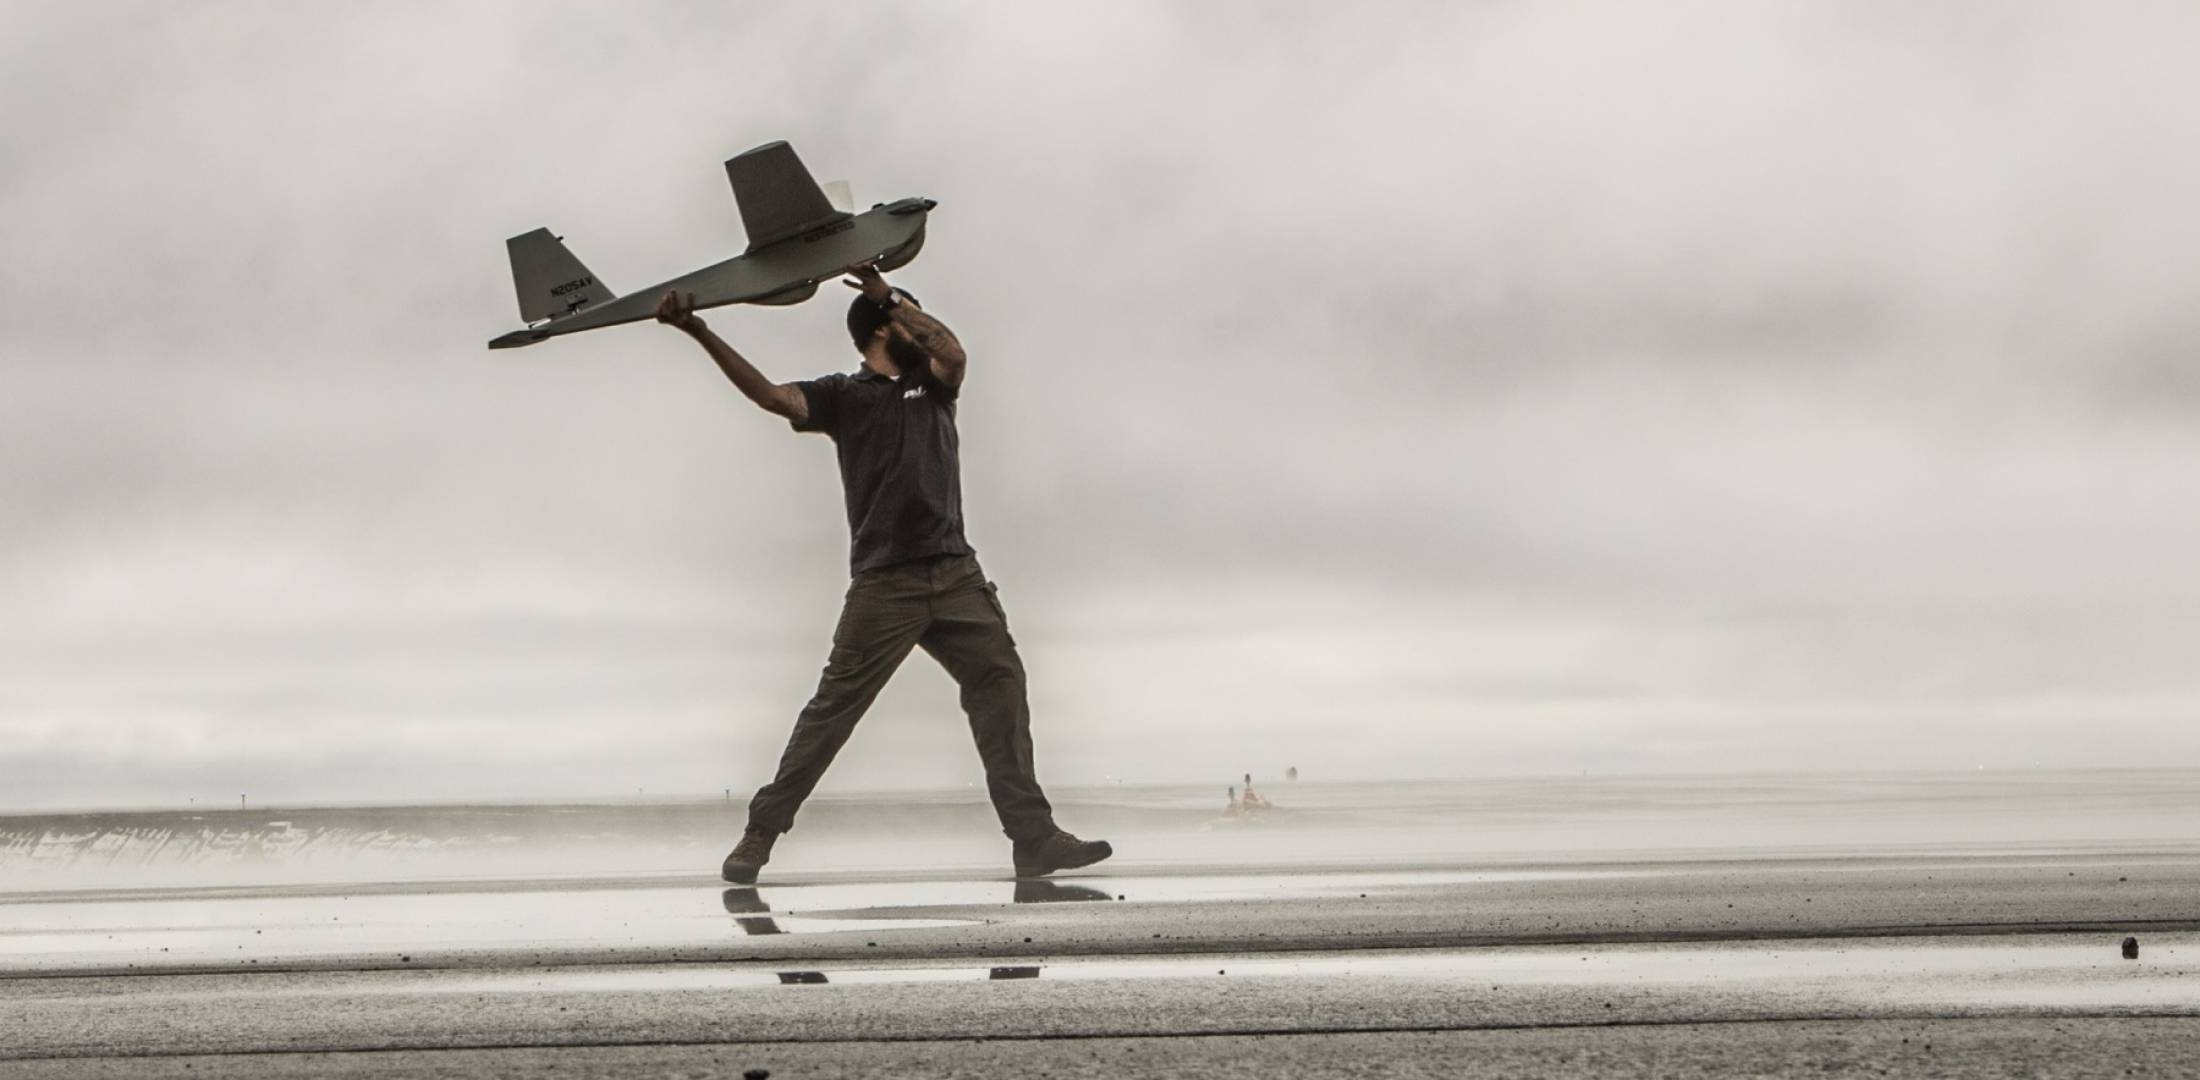 AeroVironment Puma AE launch in Alaska